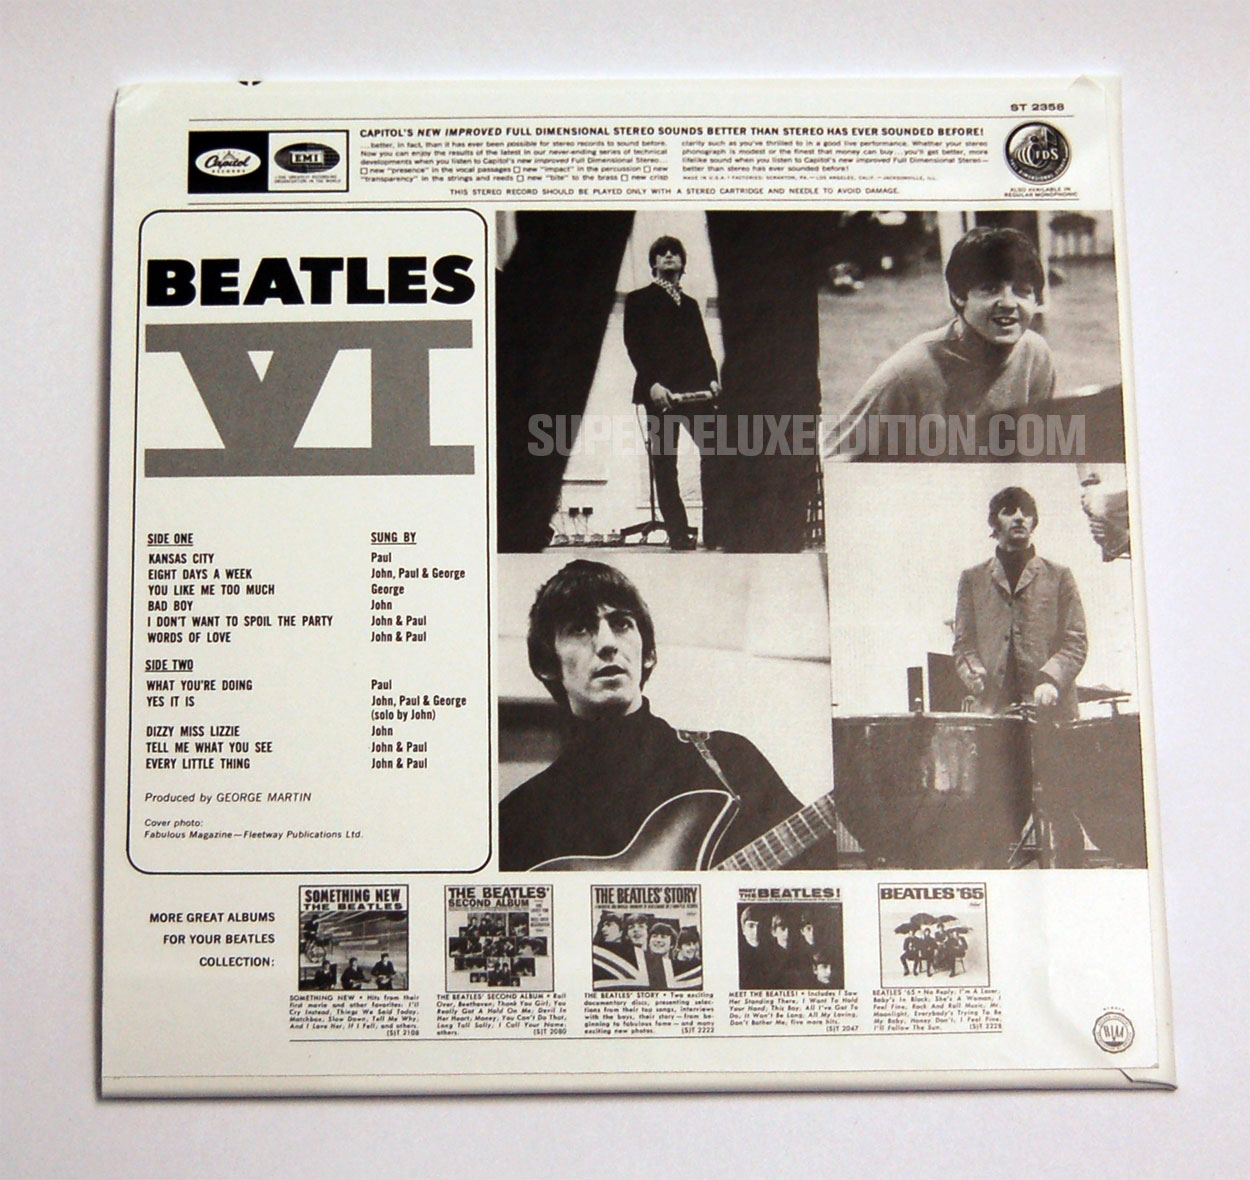 FIRST PICTURES / The Beatles / The US Albums box set: Beatles VI